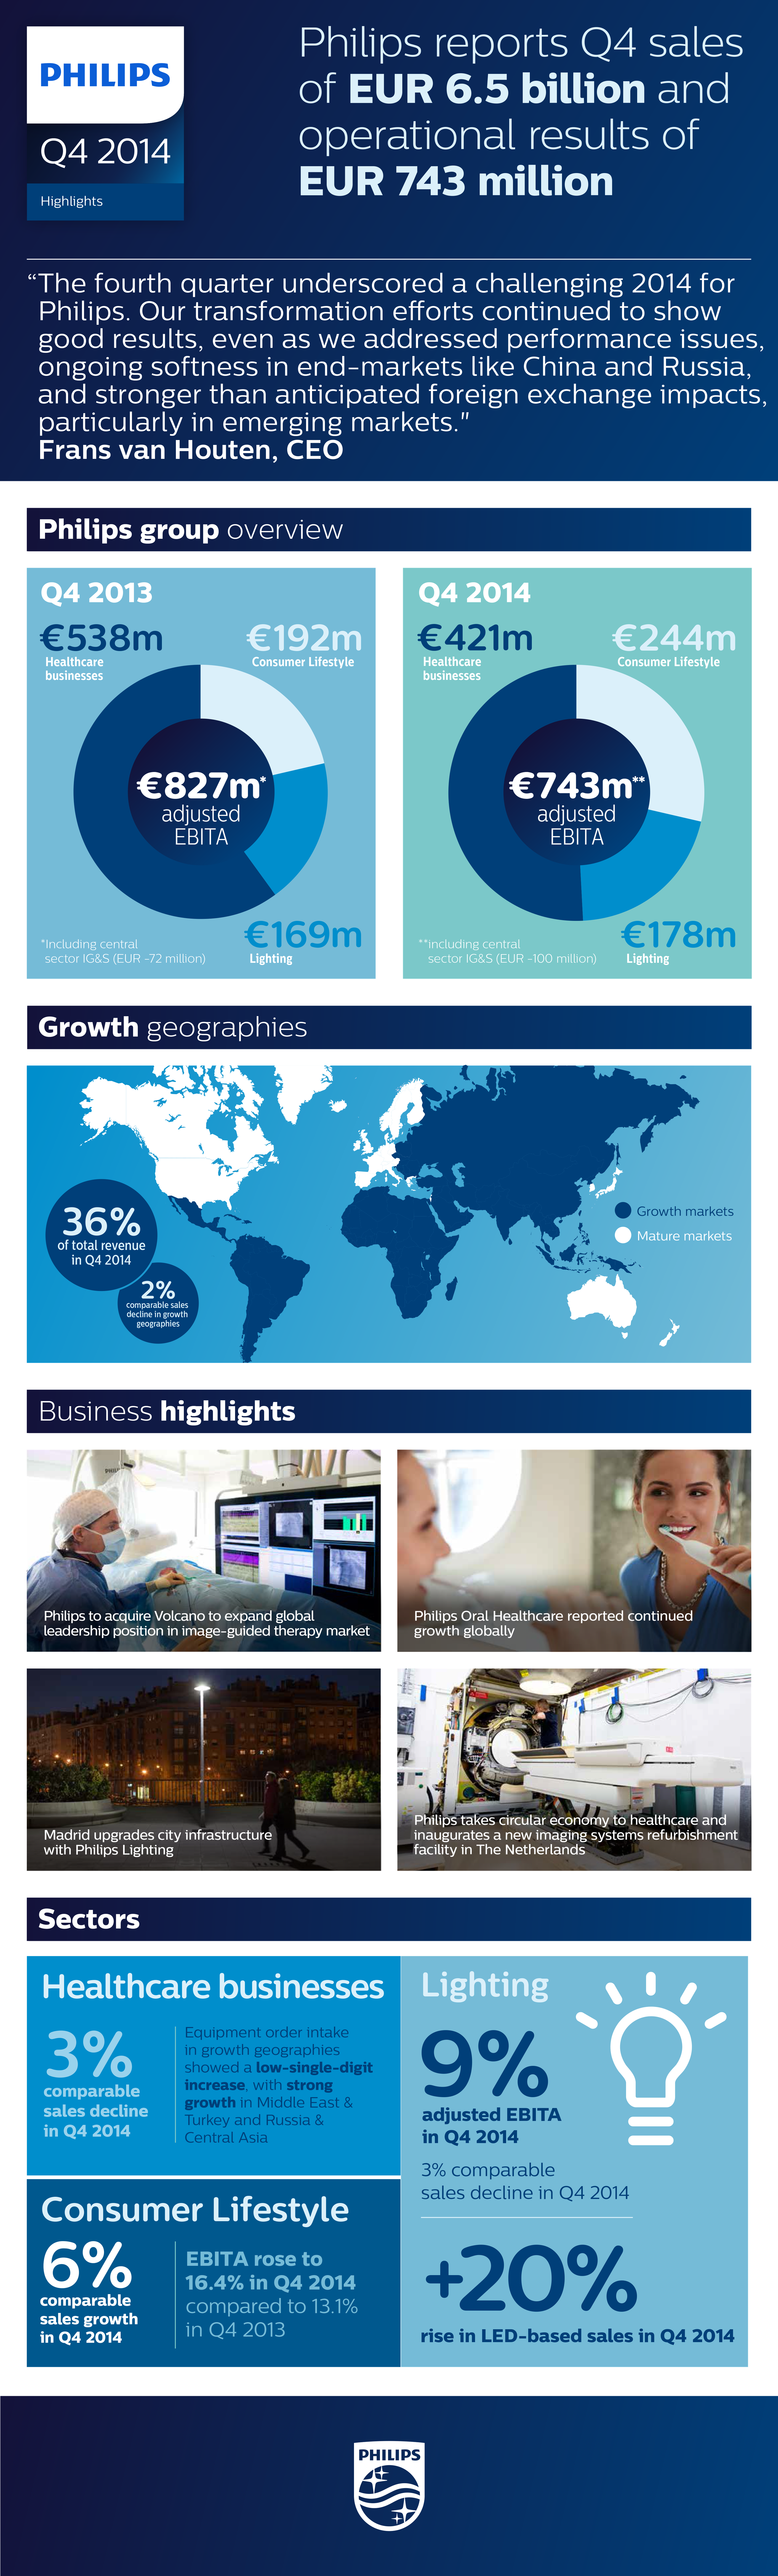 philips-fourth-quarter-results-2014